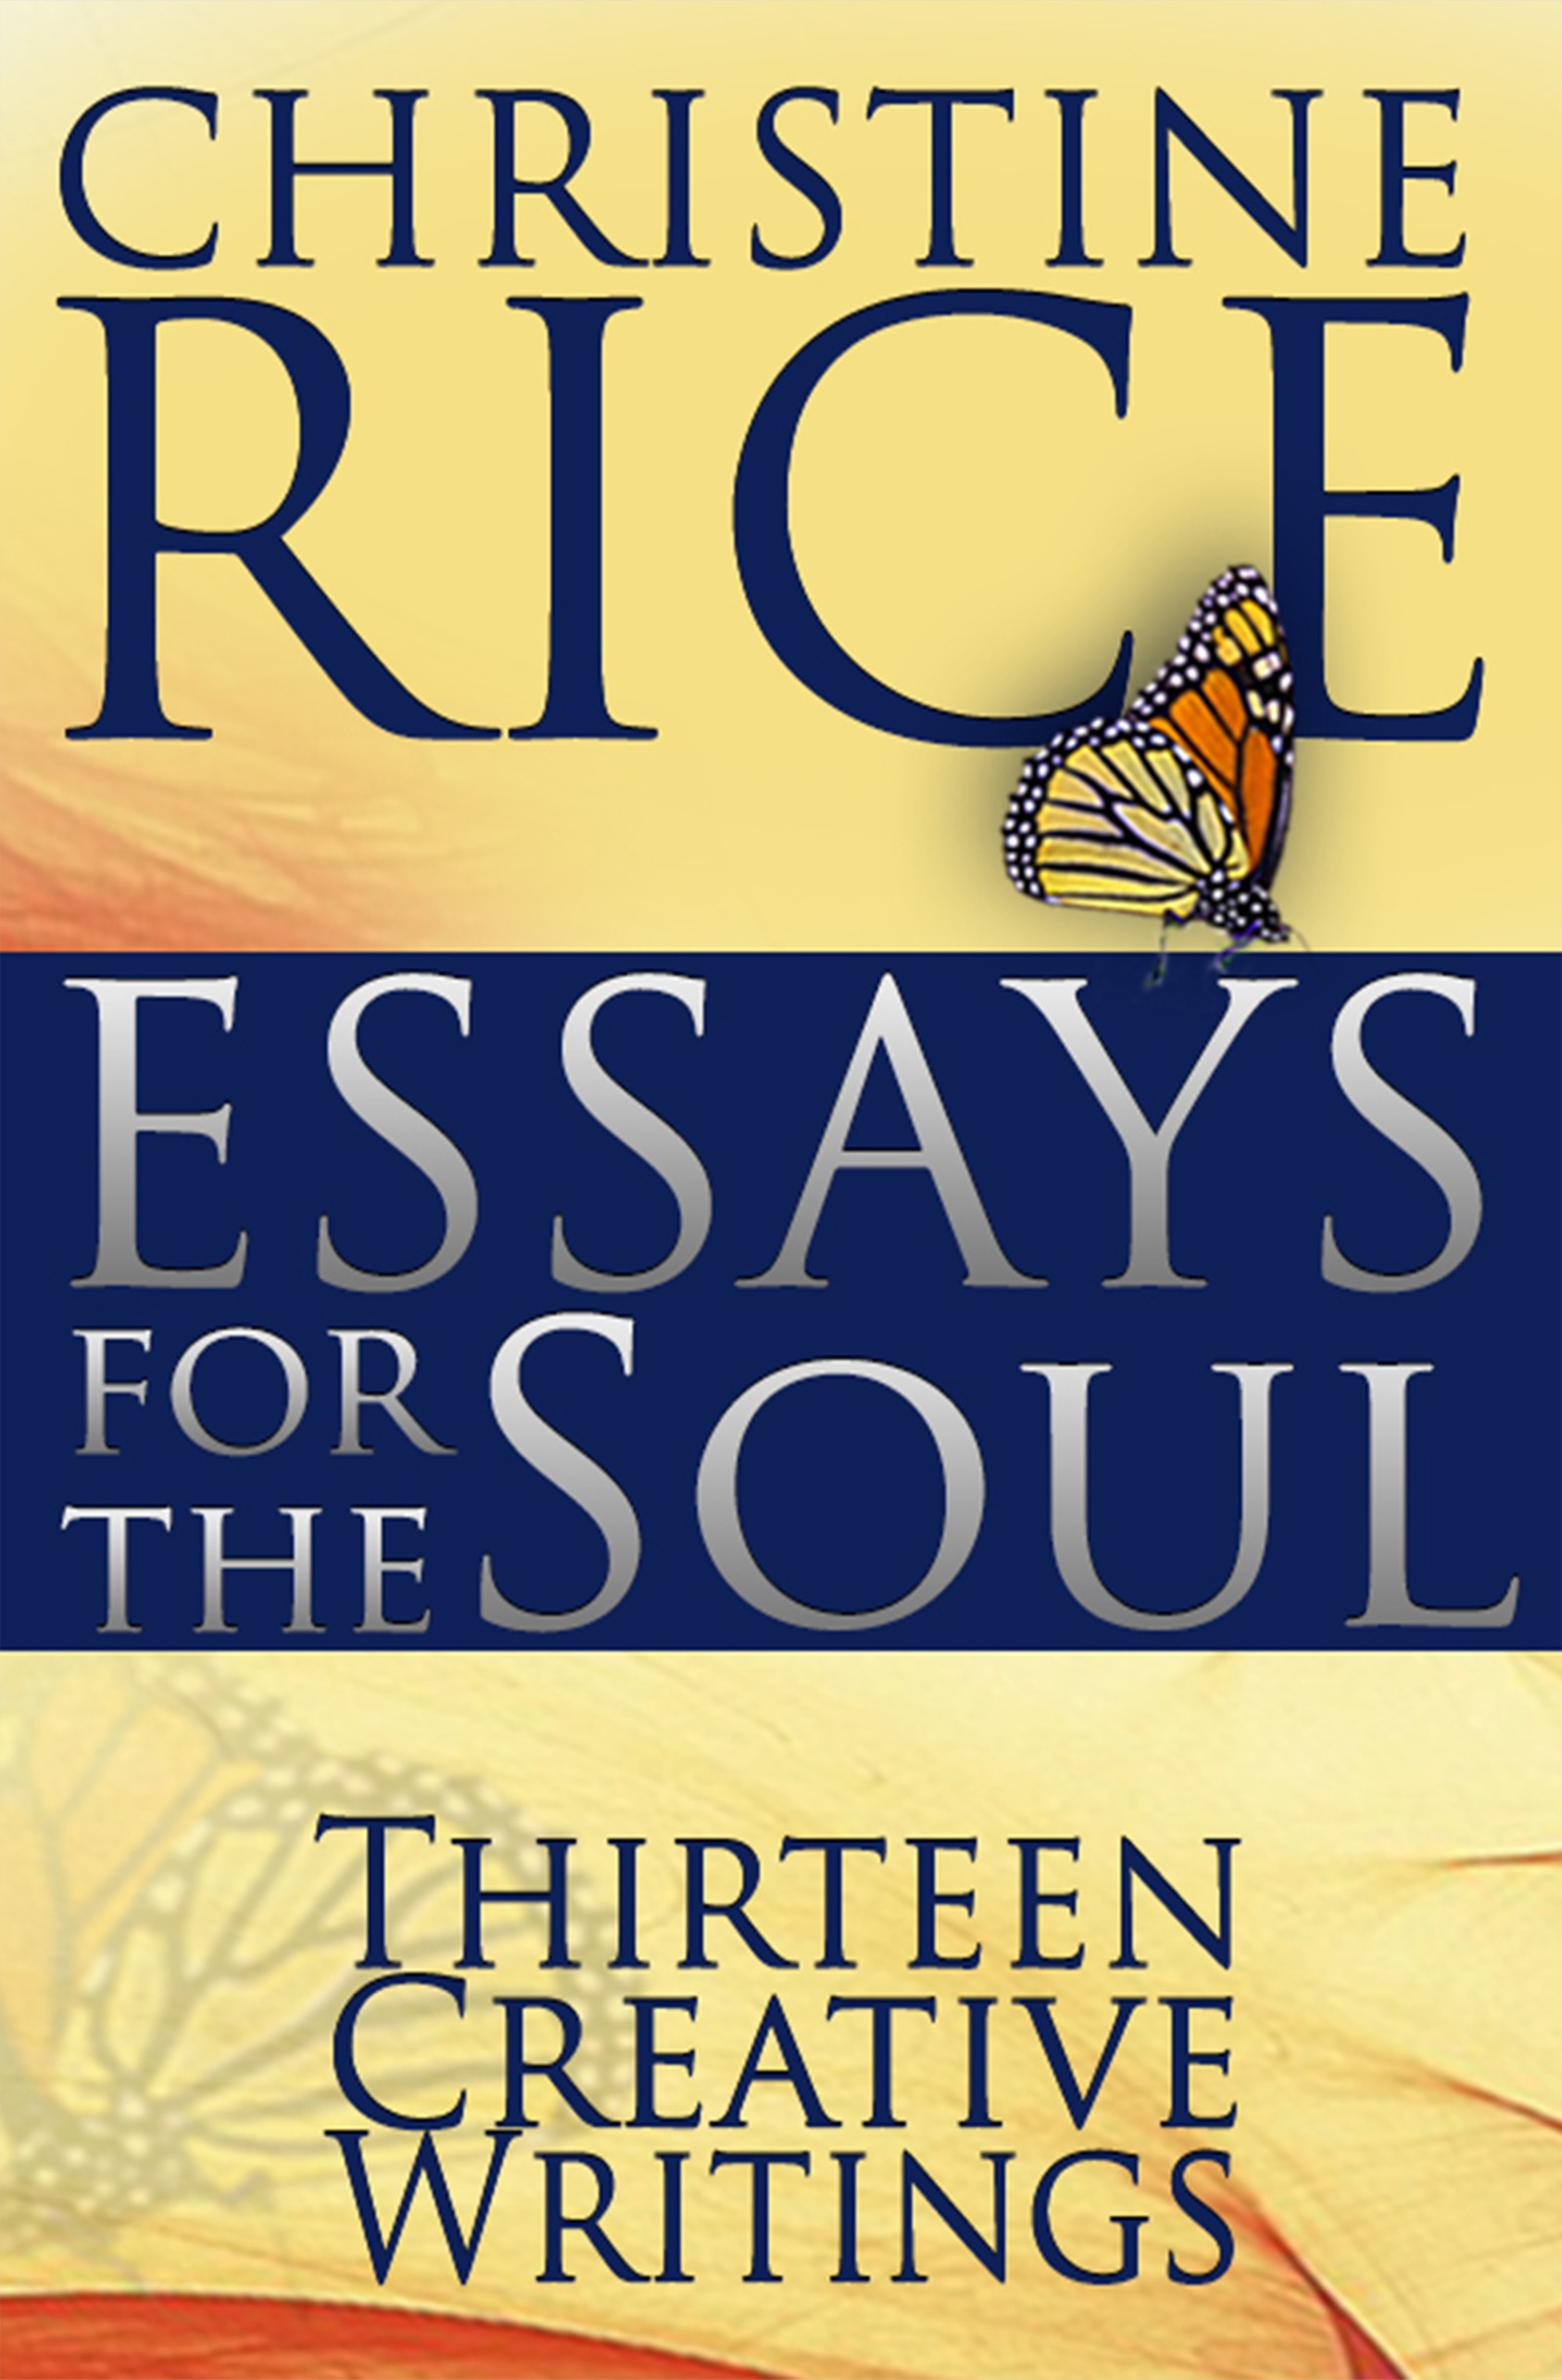 Essays for the Soul: Thirteen Creative Writings, an Ebook by Christine Rice